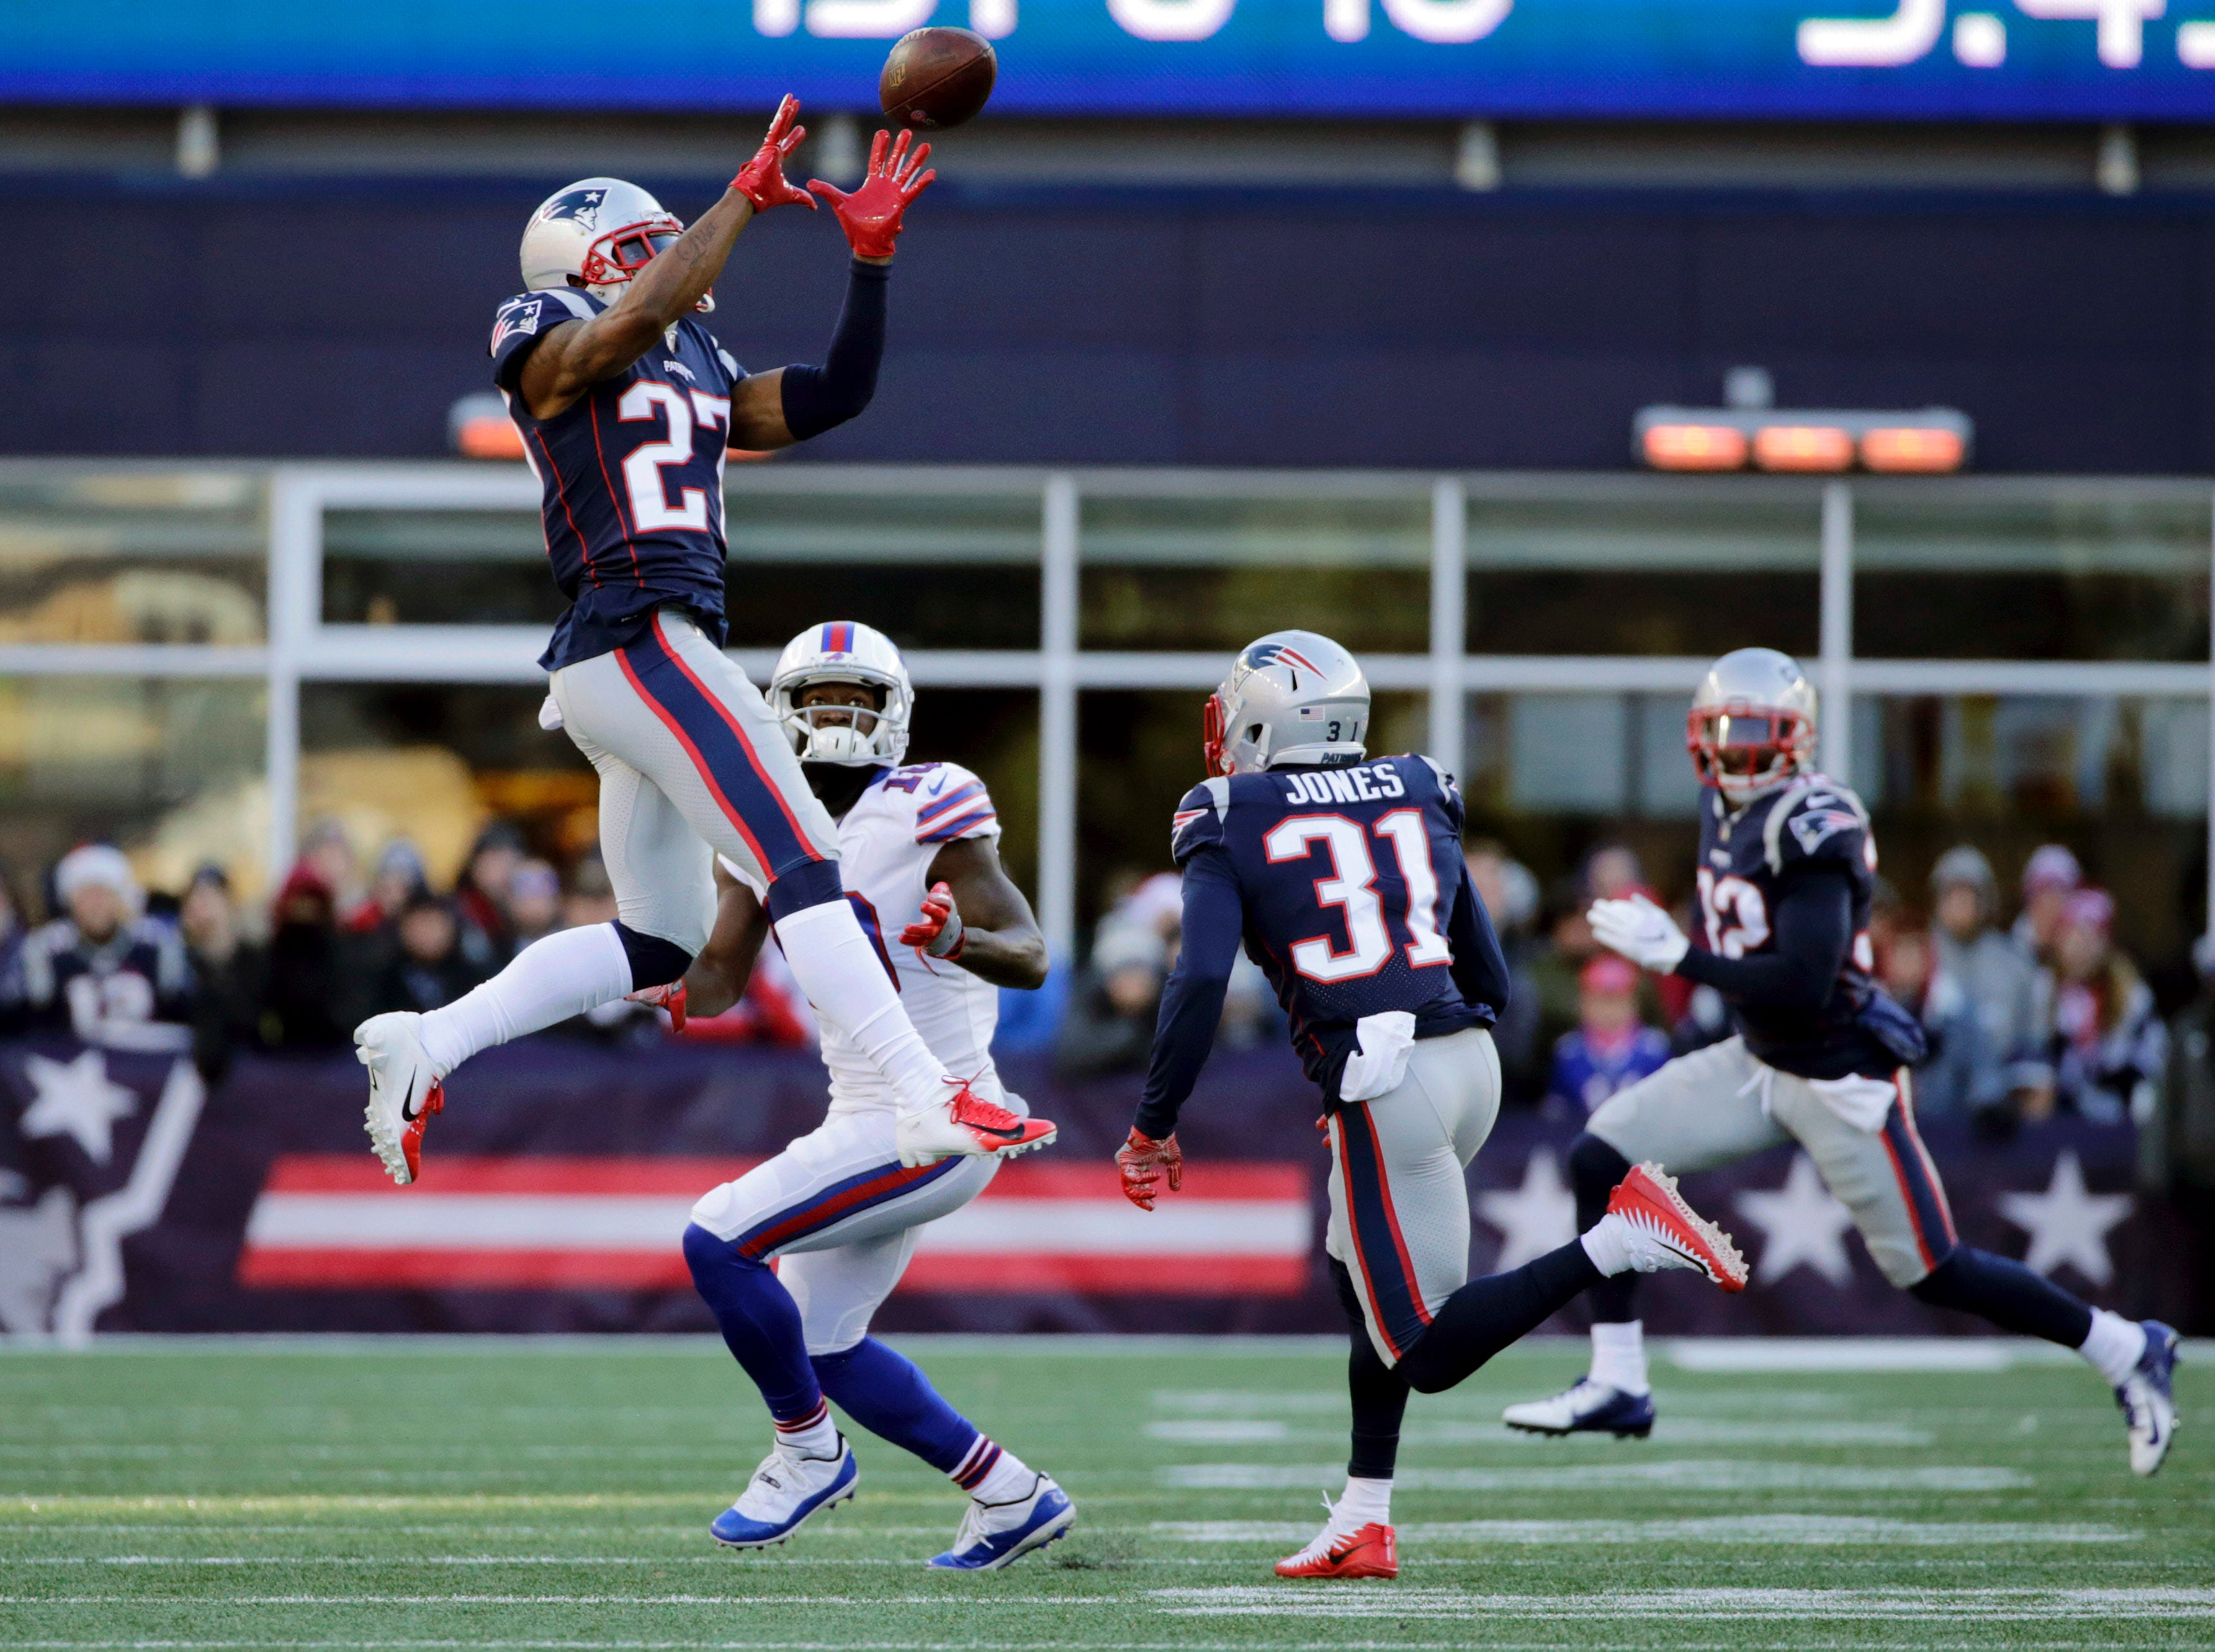 New England Patriots defensive back J.C. Jackson (27) intercepts a pass intended for Buffalo Bills wide receiver Deonte Thompson (10) during the first half of an NFL football game, Sunday, Dec. 23, 2018, in Foxborough, Mass. (AP Photo/Elise Amendola)